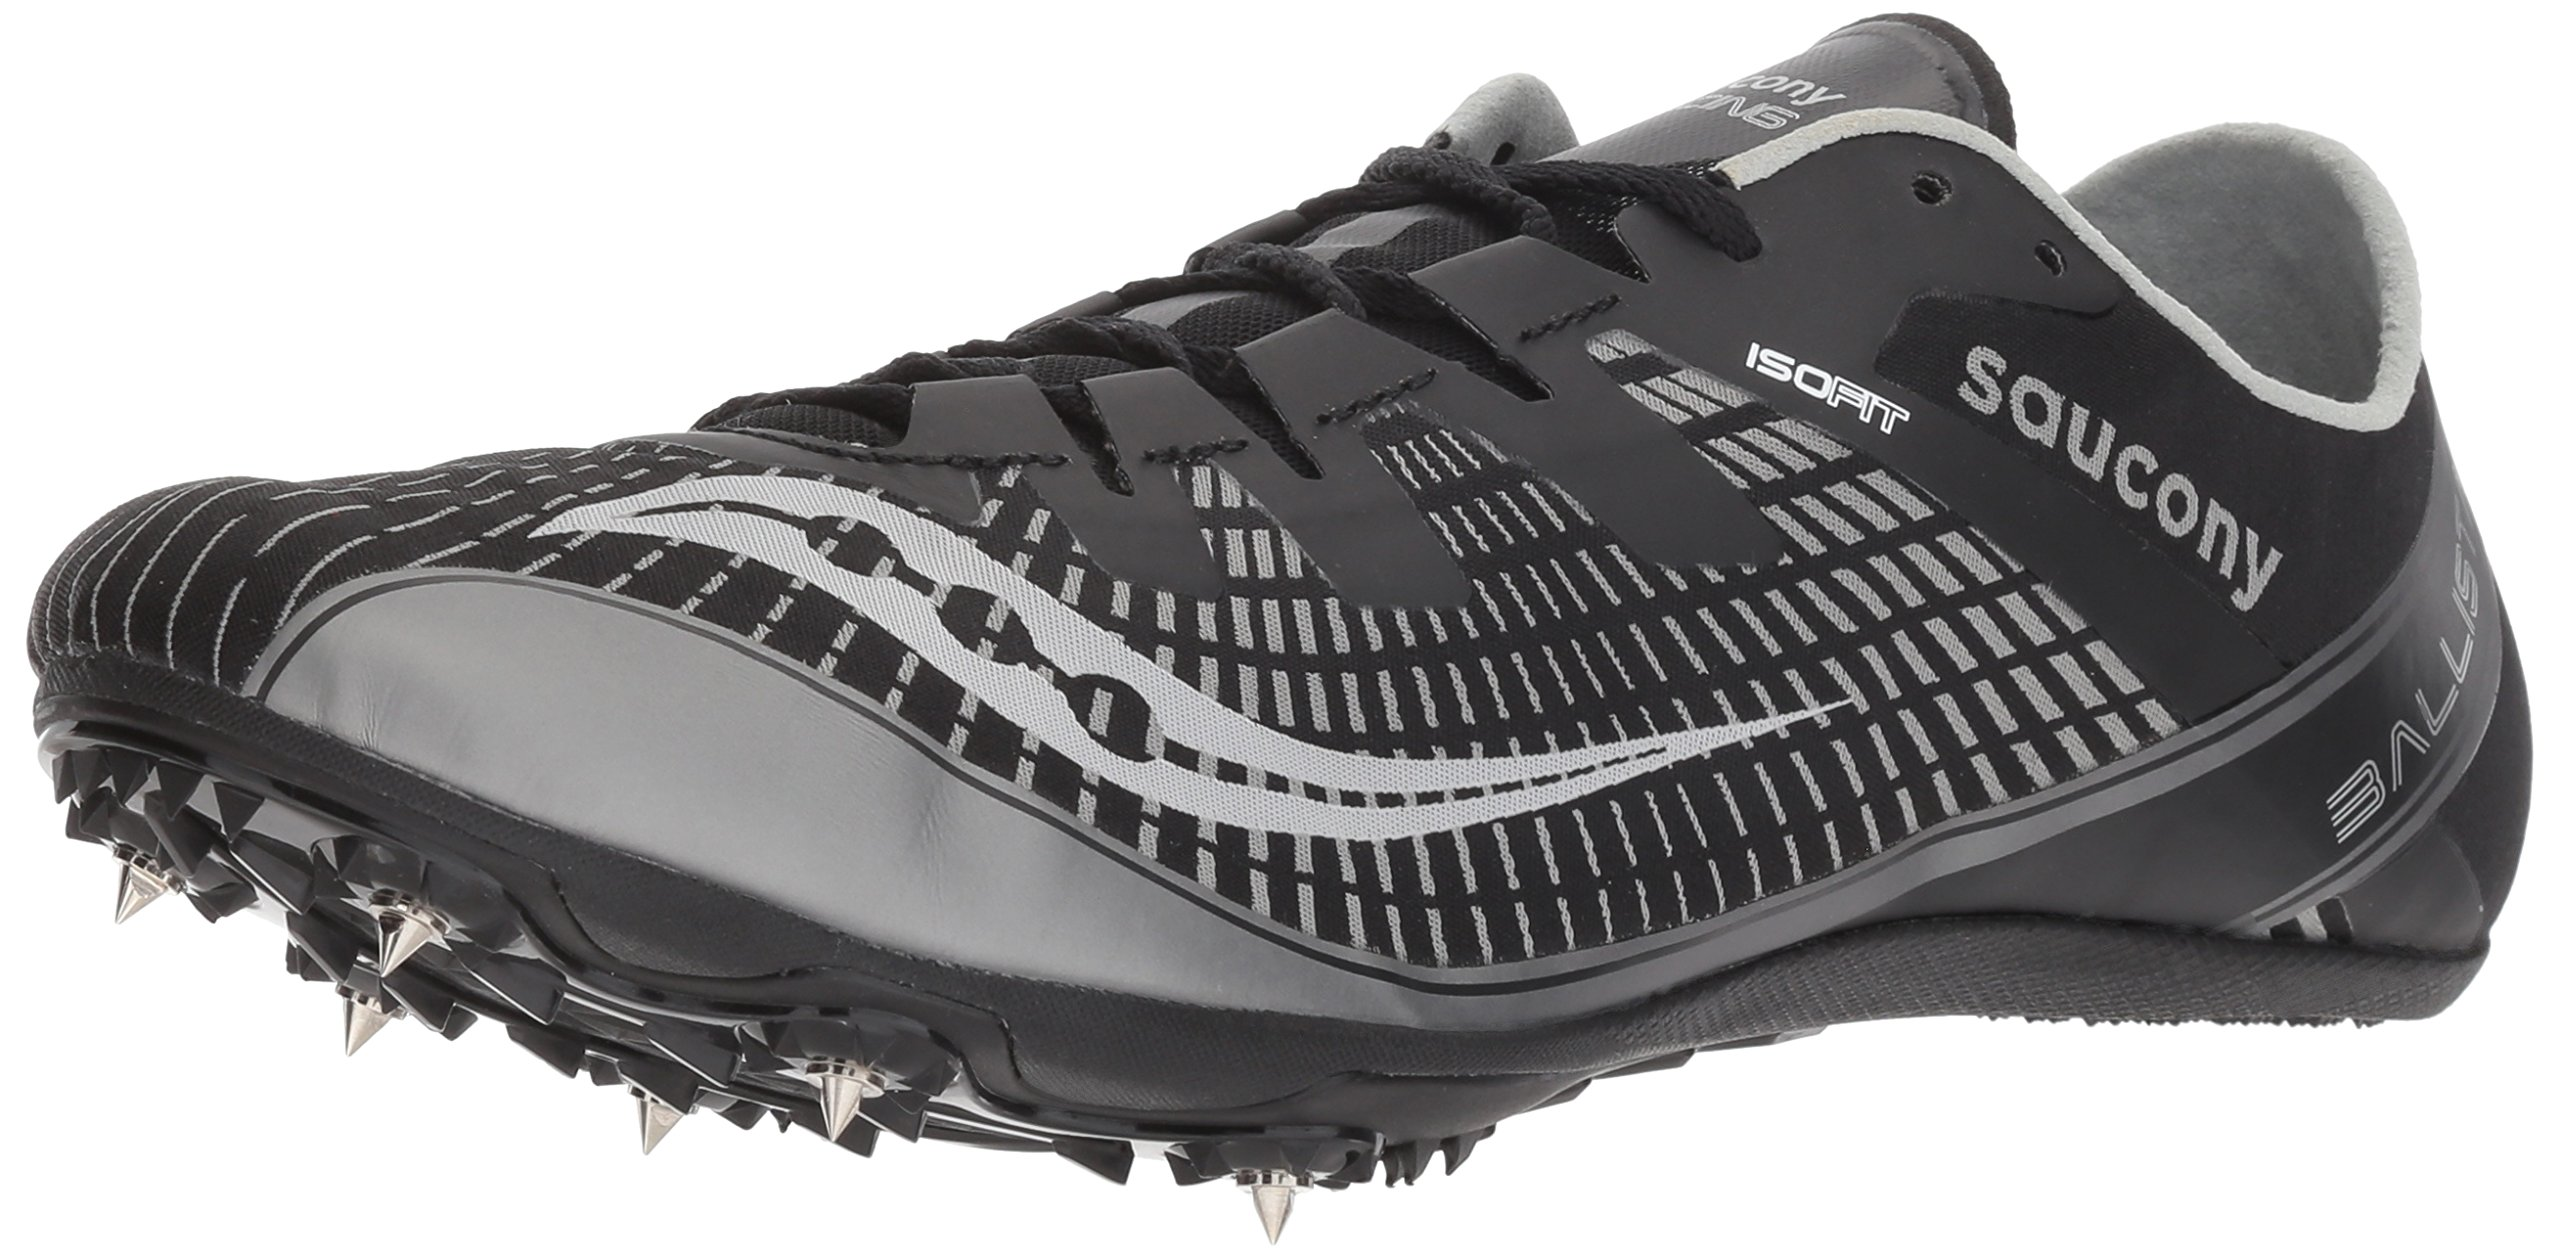 Saucony Men's Ballista 2 Track and Field Shoe, Black/Silver, 8 Medium US